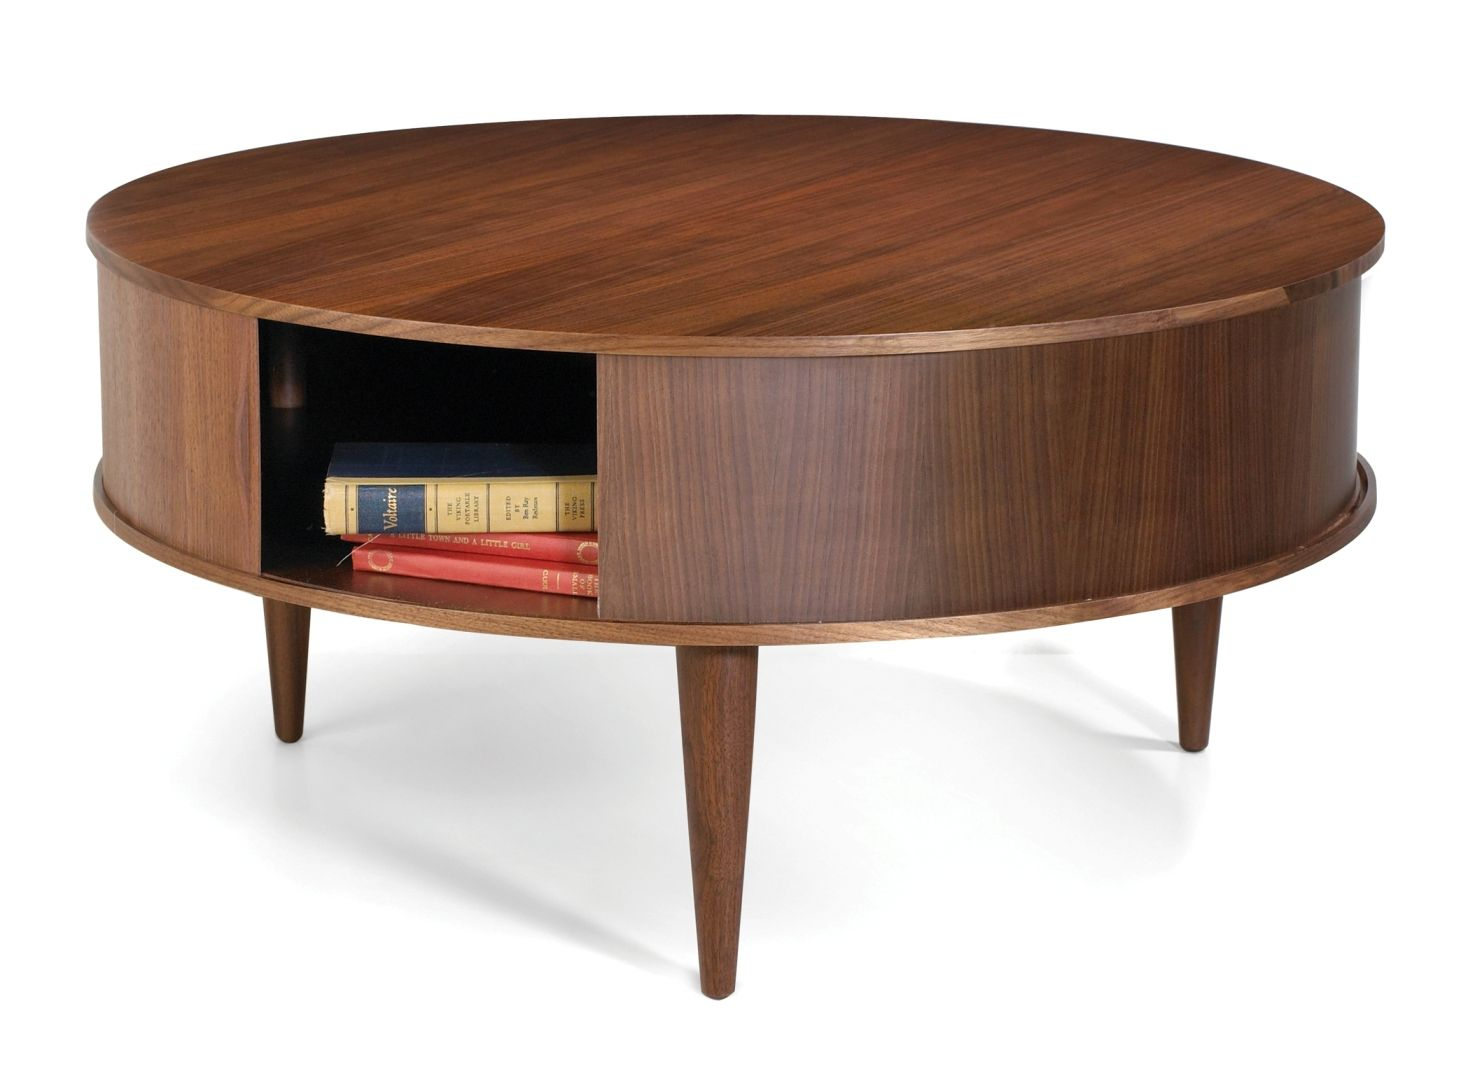 Large Round Coffee Table With Storage Ideas For The House In 2019 inside dimensions 1461 X 1066